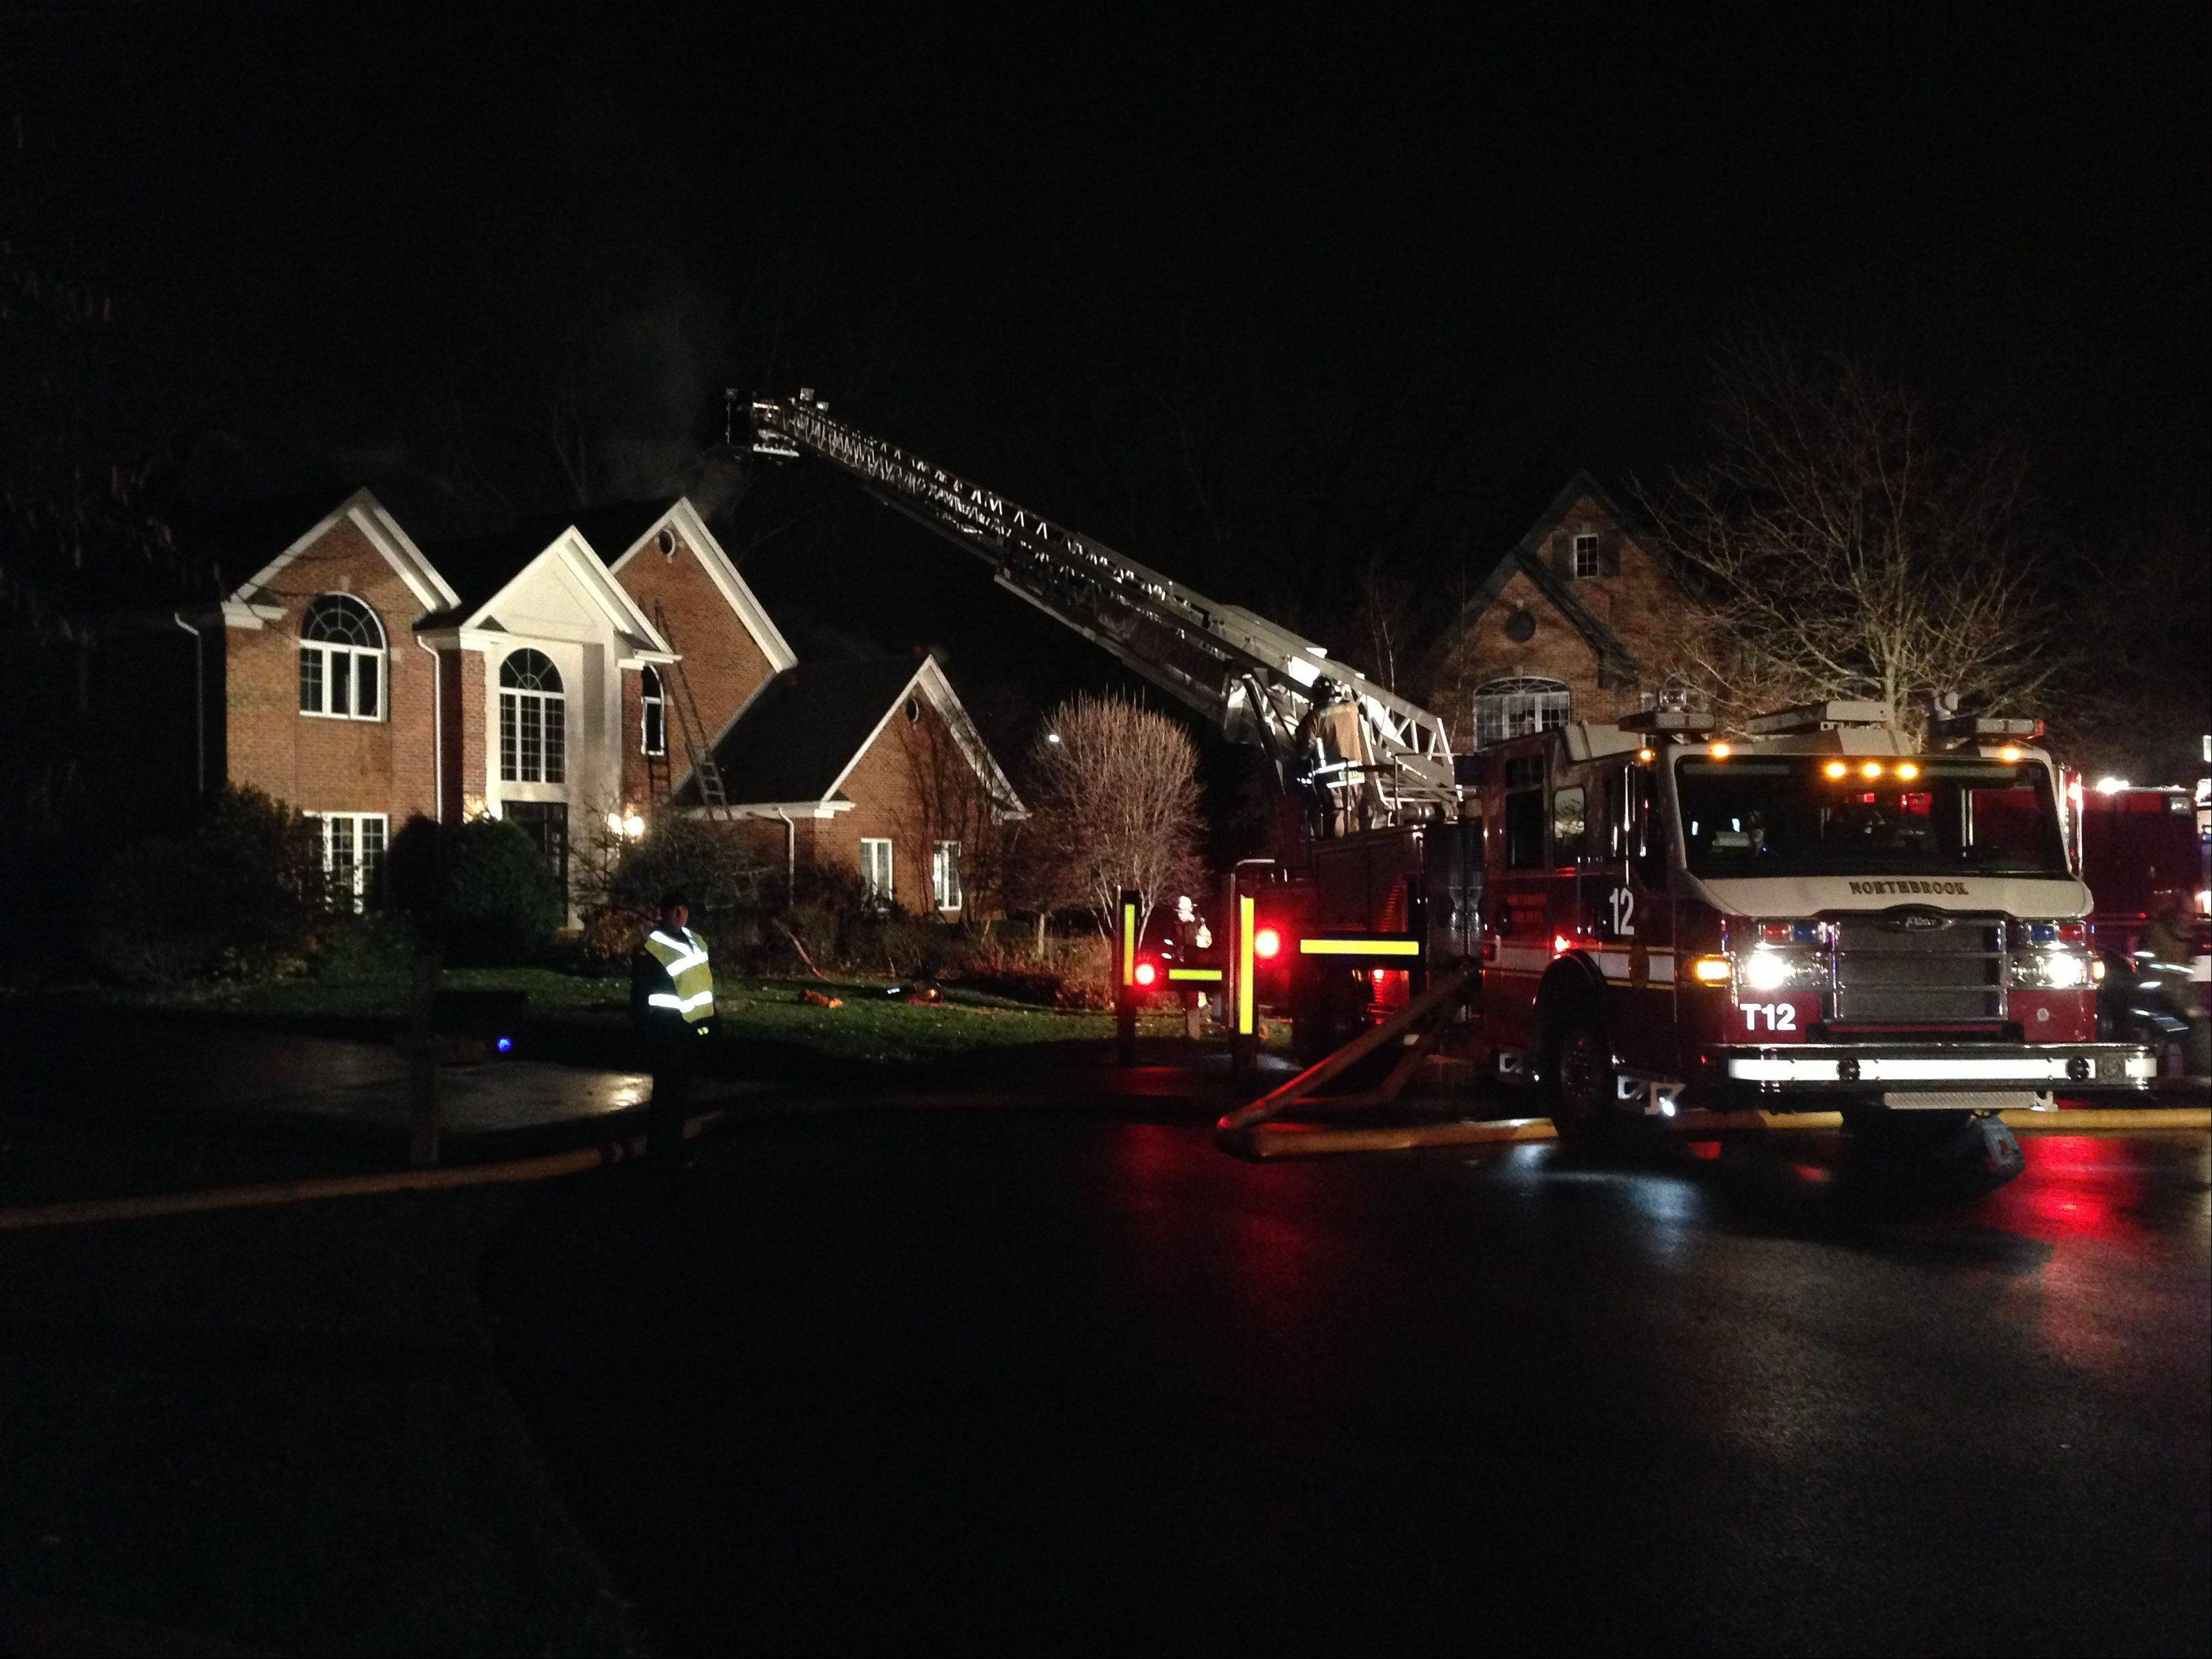 Crews responded to a house fire on the 400 block of Cherry Creek Lane in Prospect Heights on Thursday night.